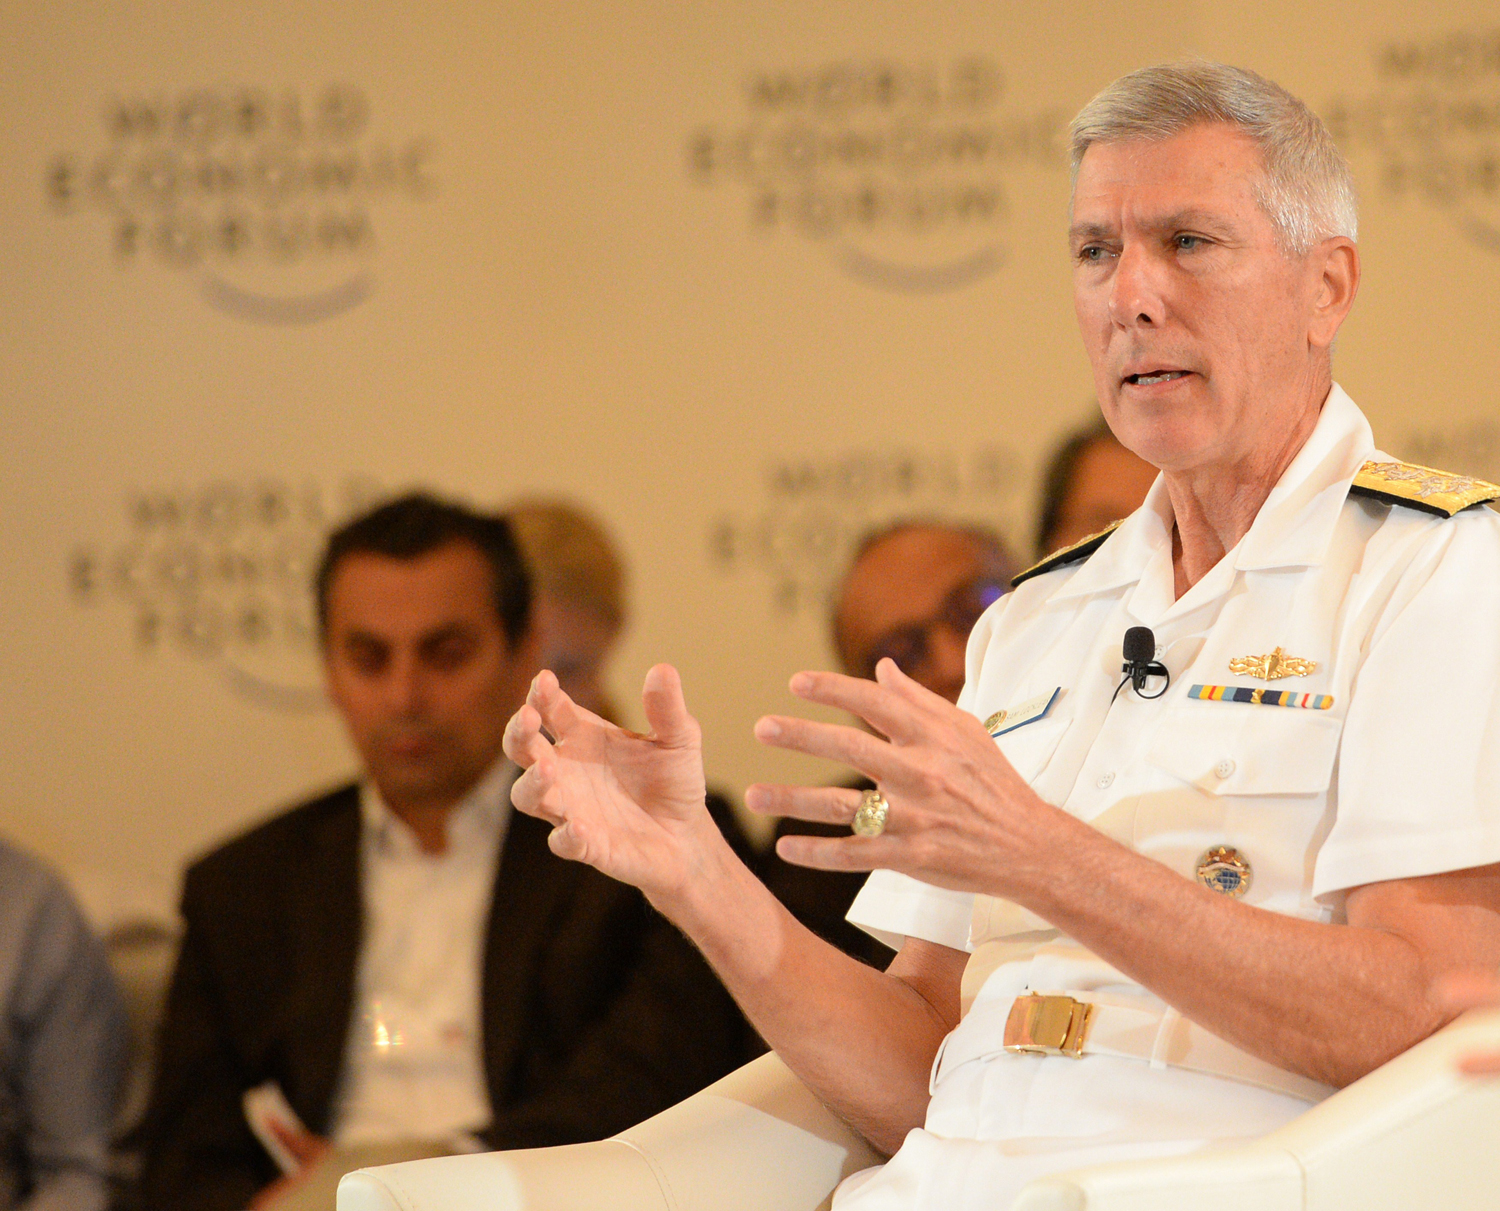 Admiral Samuel Locklear, U.S. Pacific Fleet Command commander, speaks during a session of the World Economic Forum on East Asia in Manila on May 23, 2014